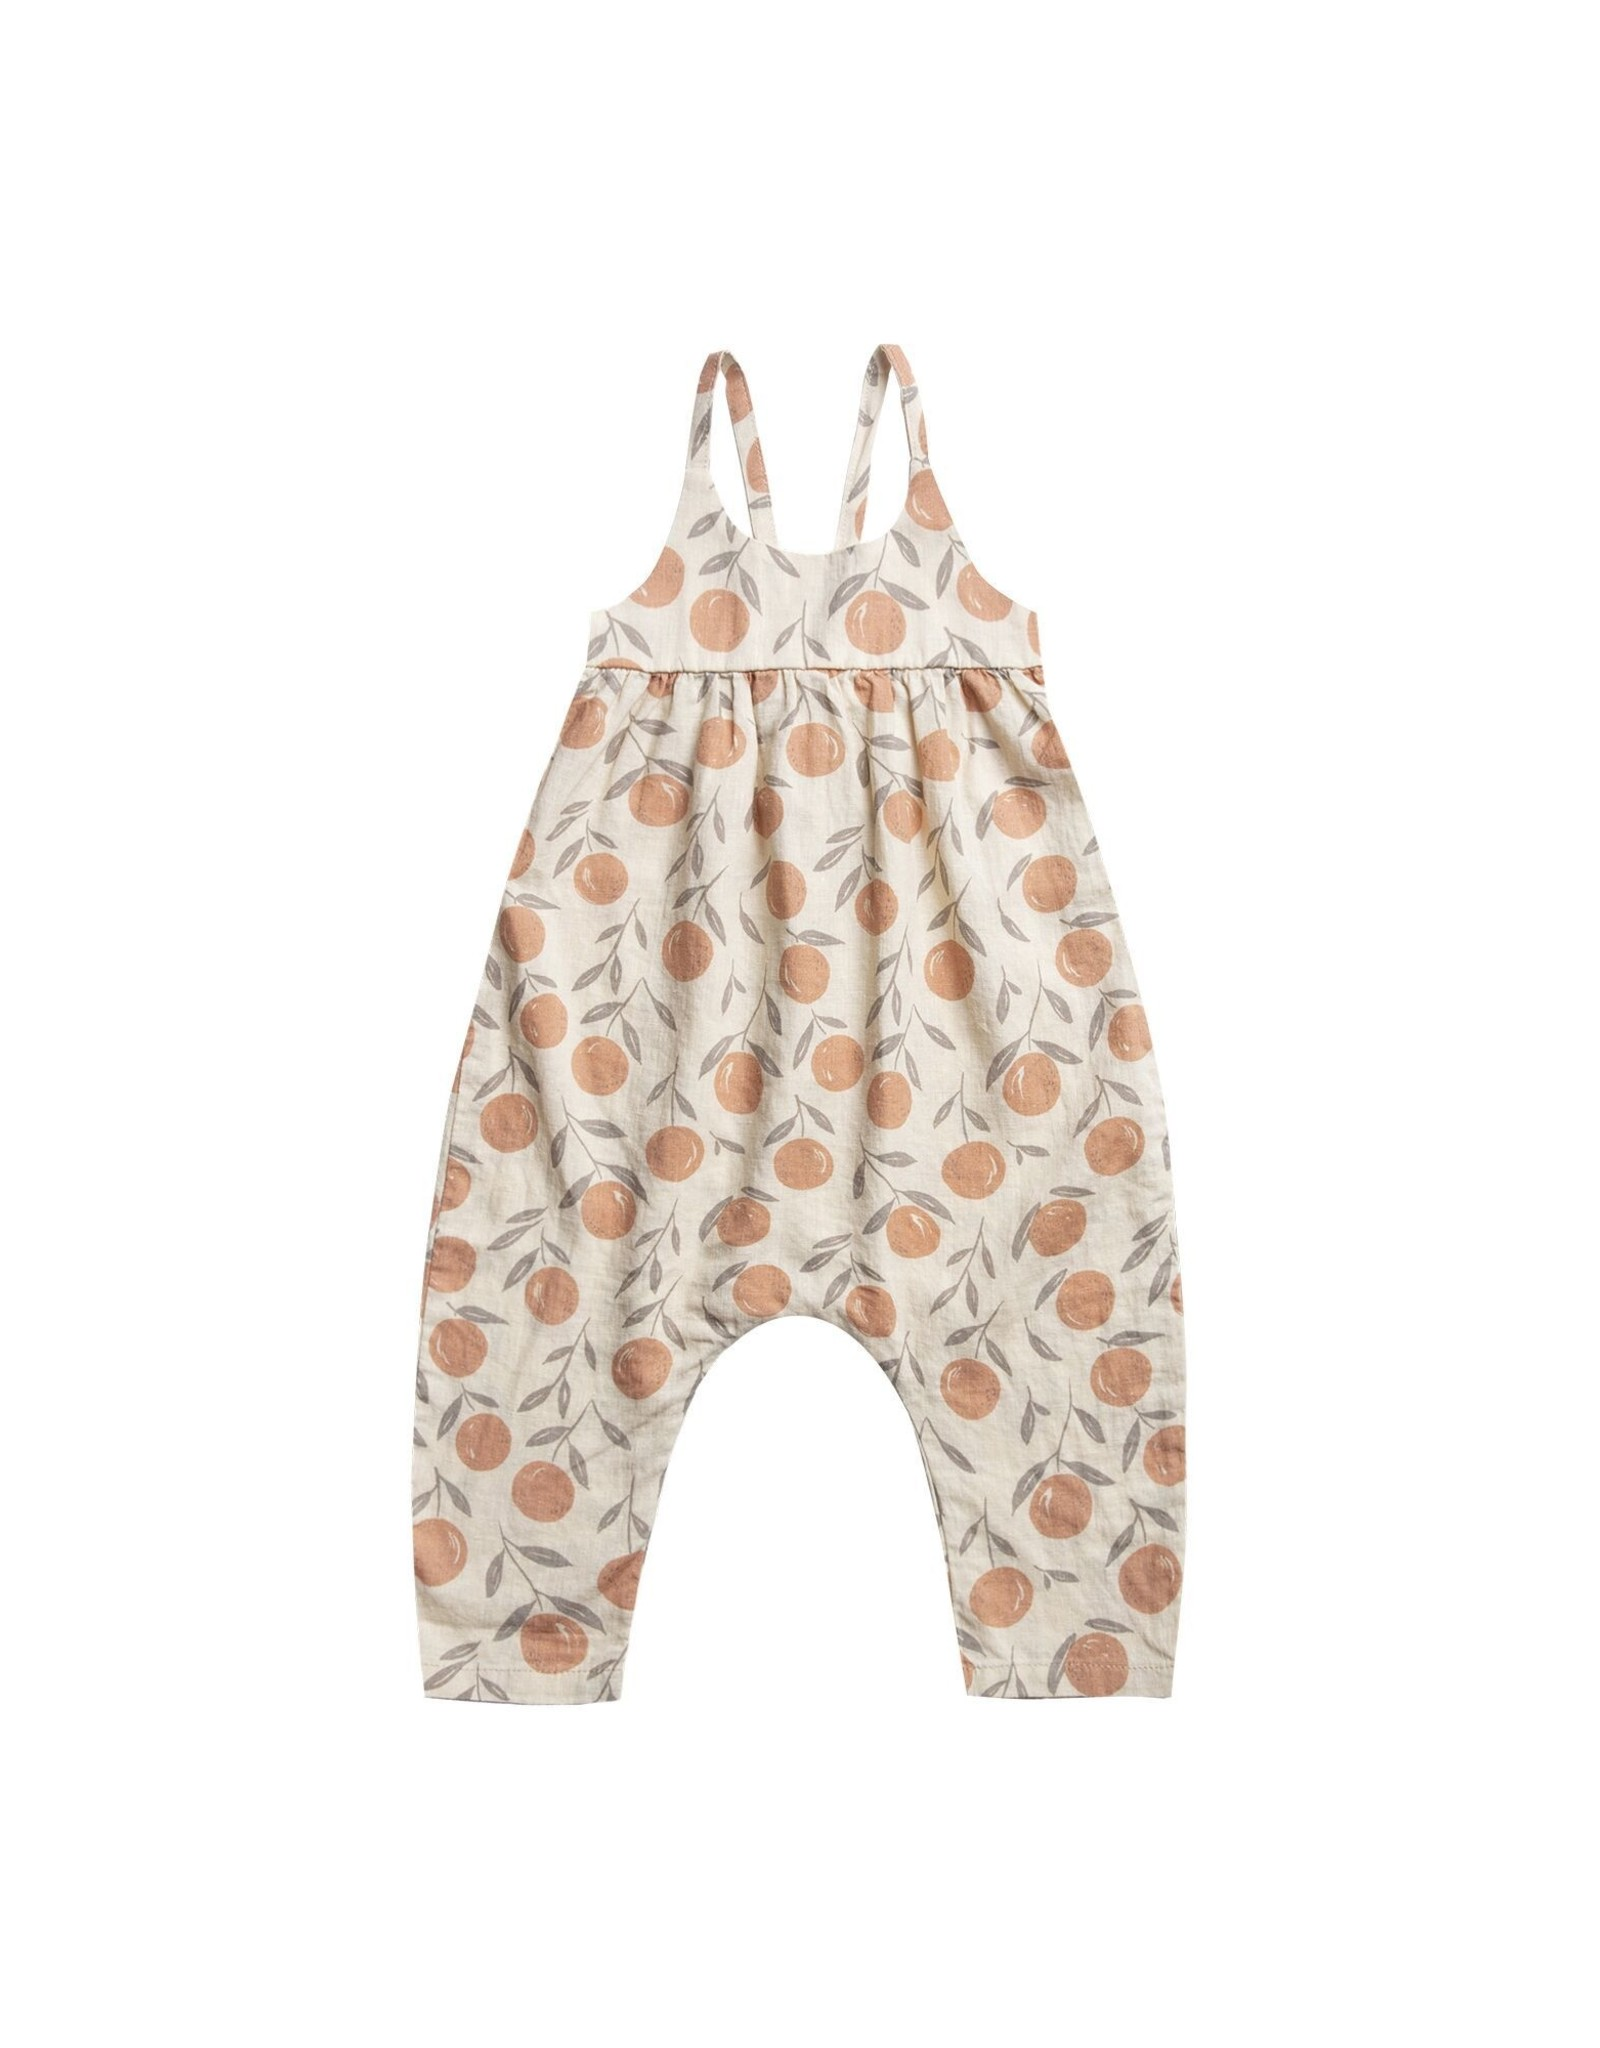 Rylee and Cru peaches gigi jumpsuit